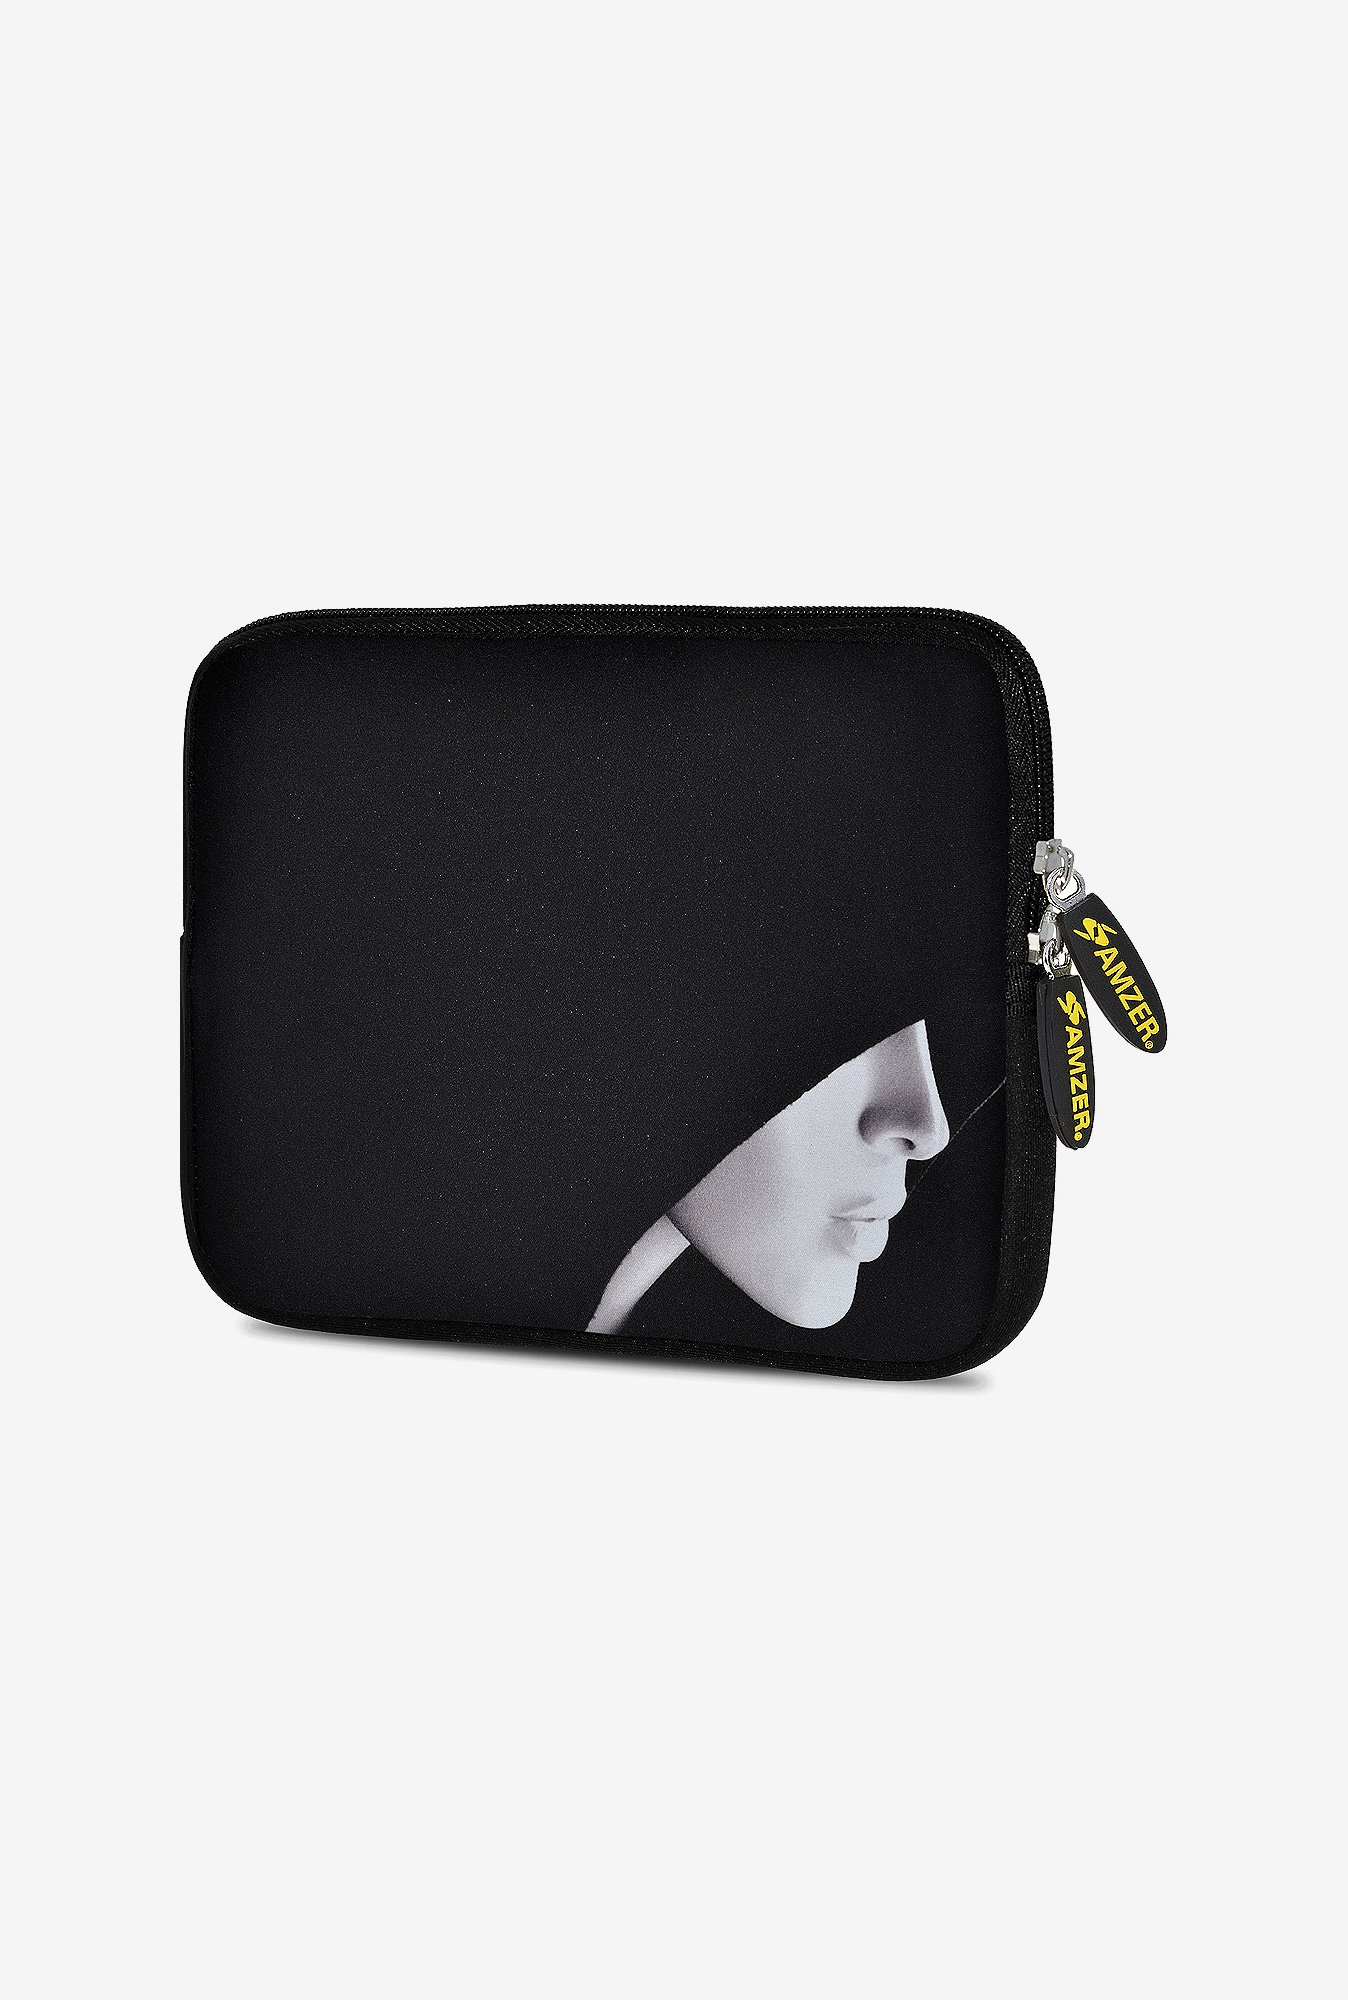 Amzer 7.75 Inch Neoprene Sleeve - The Dark Lord